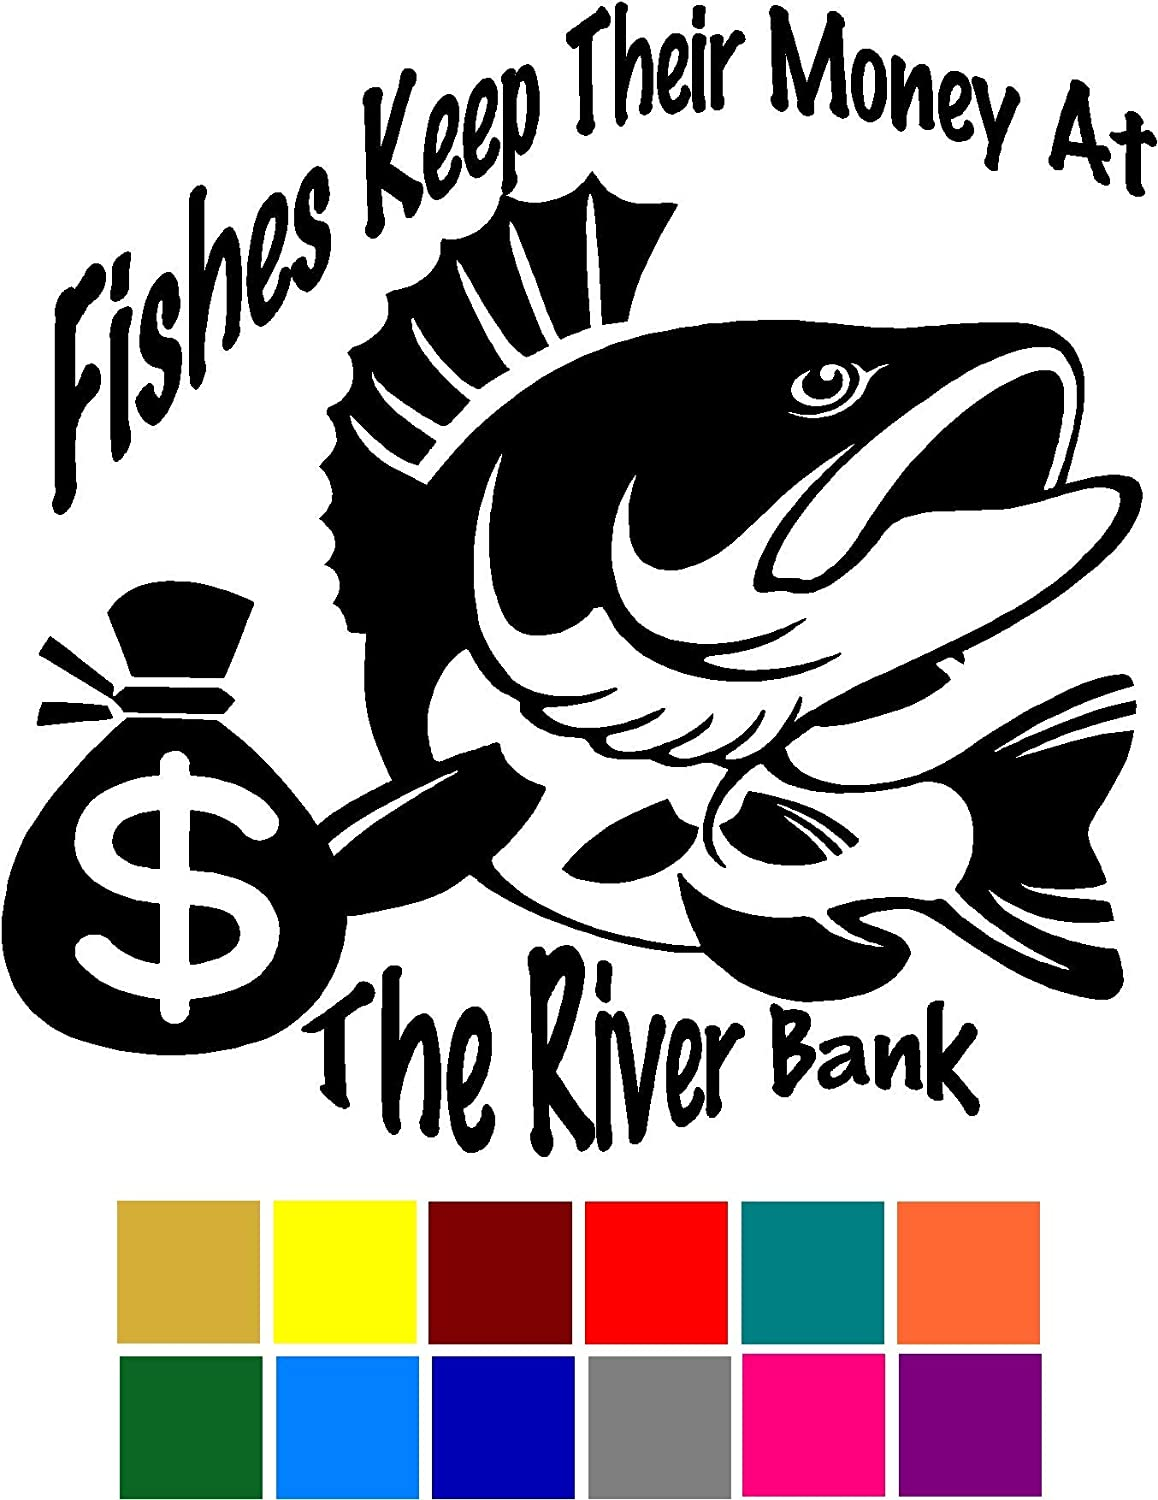 Fishes Keep Their Money Are The River Bank Funny Animal Pun Decal Choose Color V and T Gifts